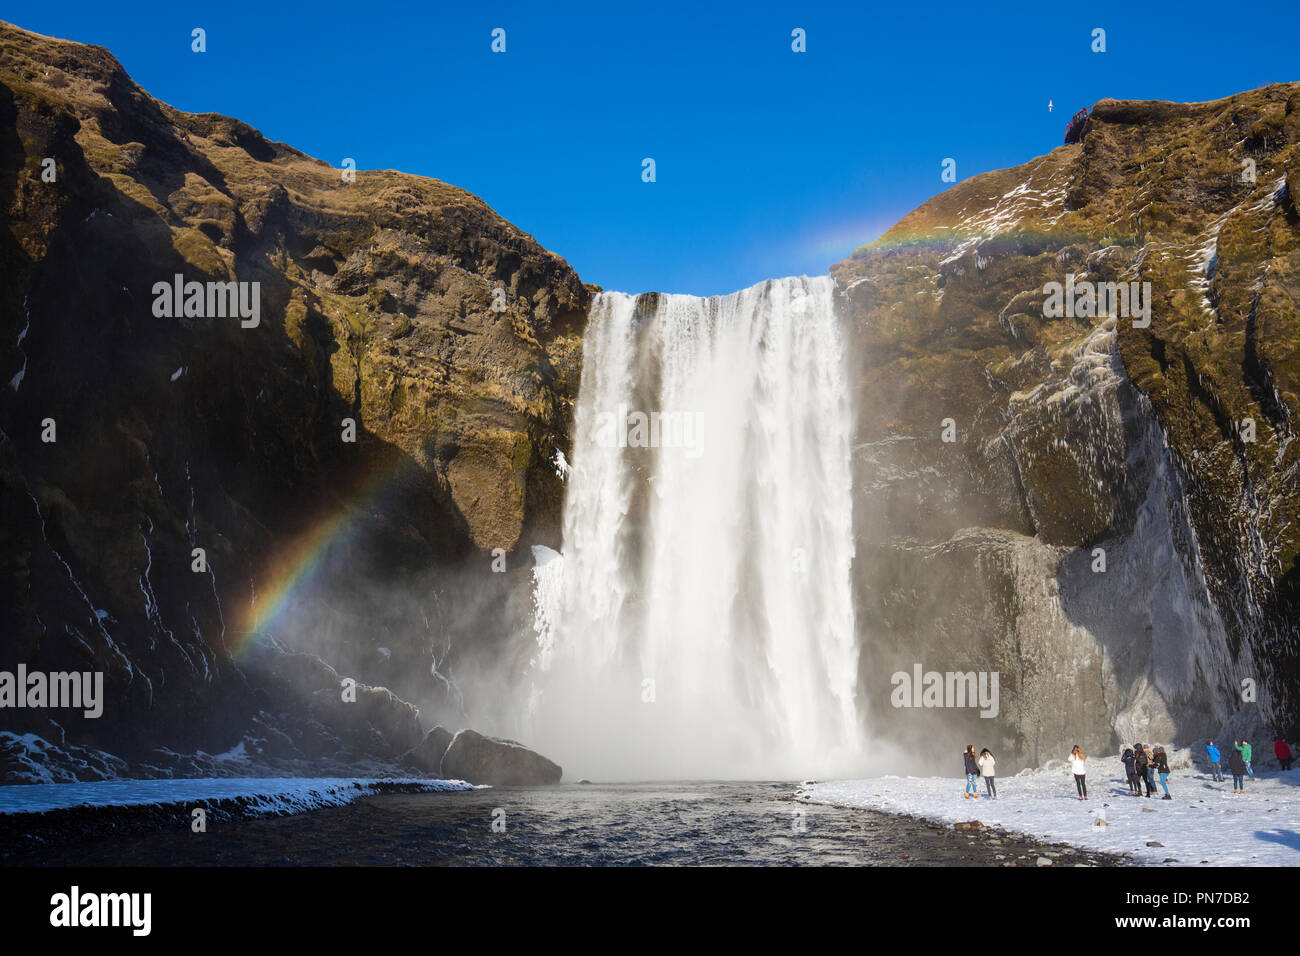 Tourists and rainbow at spectacular Skogar waterfall - Skogarfoss - in South Iceland with gushing glacial melting waters - Stock Image